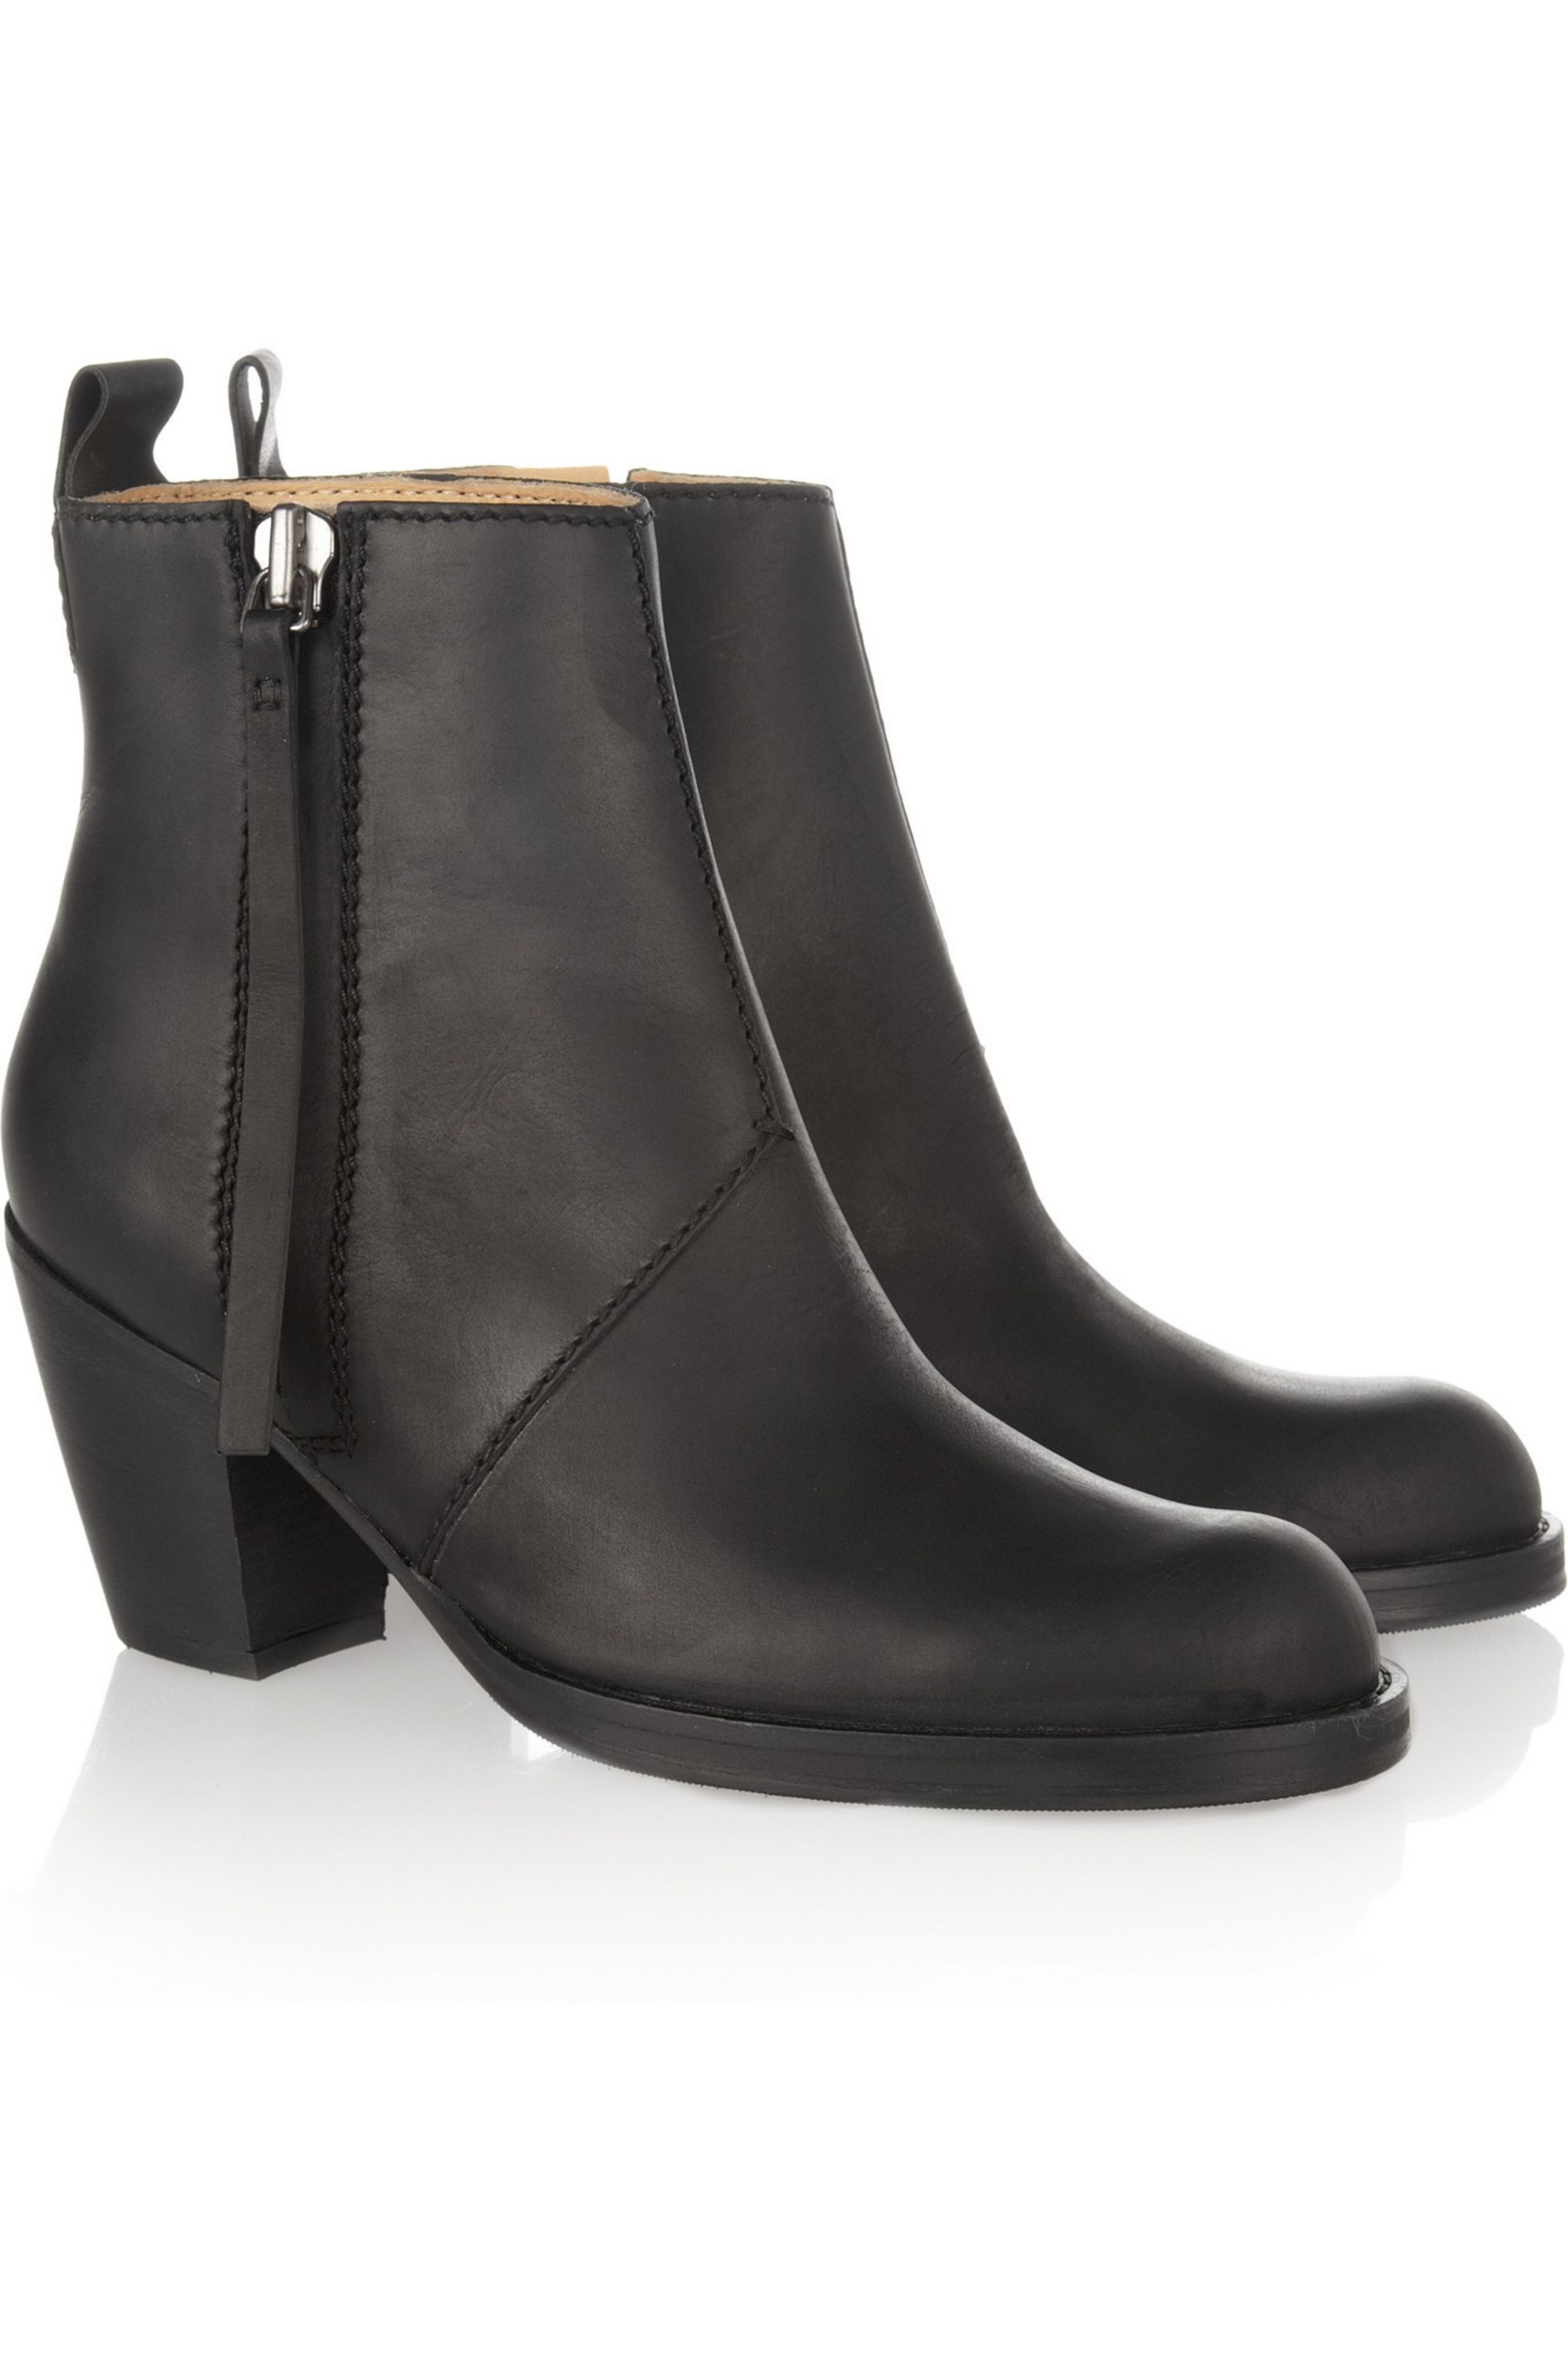 Black The Pistol leather ankle boots